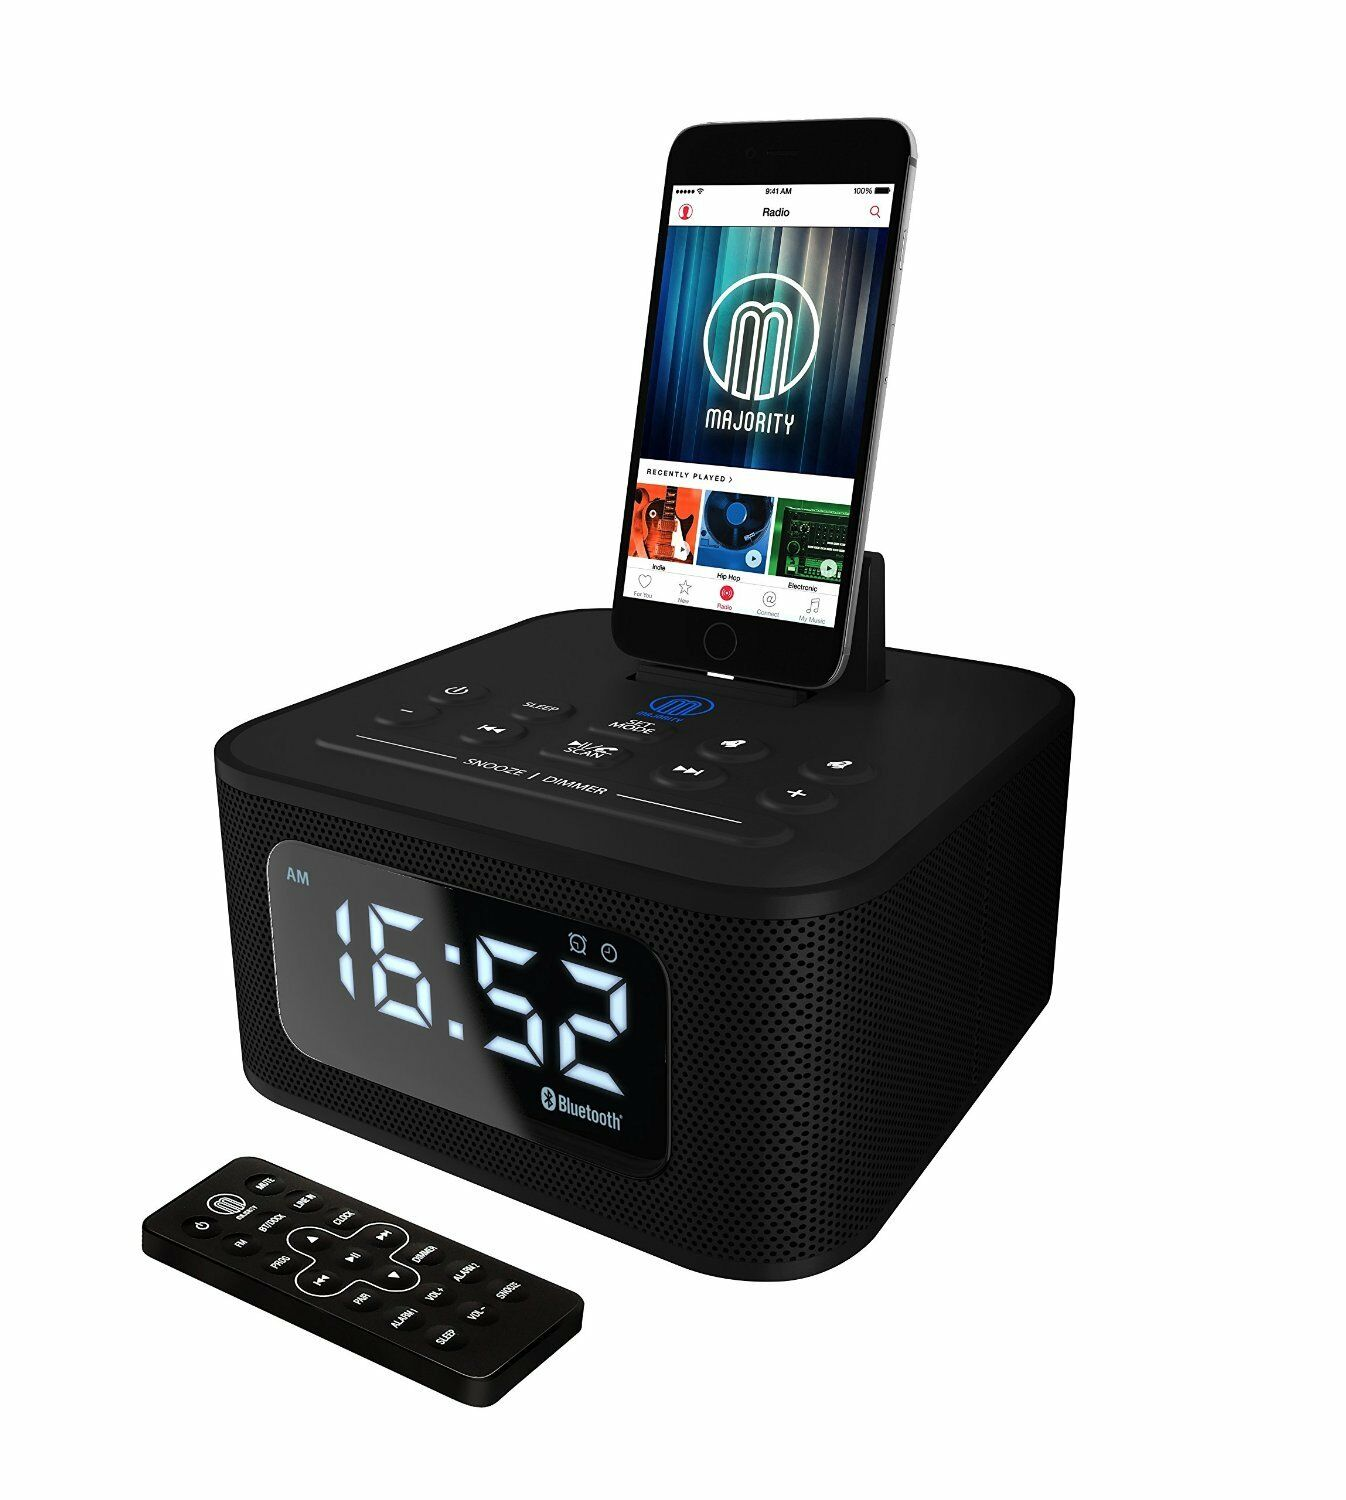 majority docking station lautsprecher dock f r ipod iphone 5 5s 5c 6 6 7 ebay. Black Bedroom Furniture Sets. Home Design Ideas